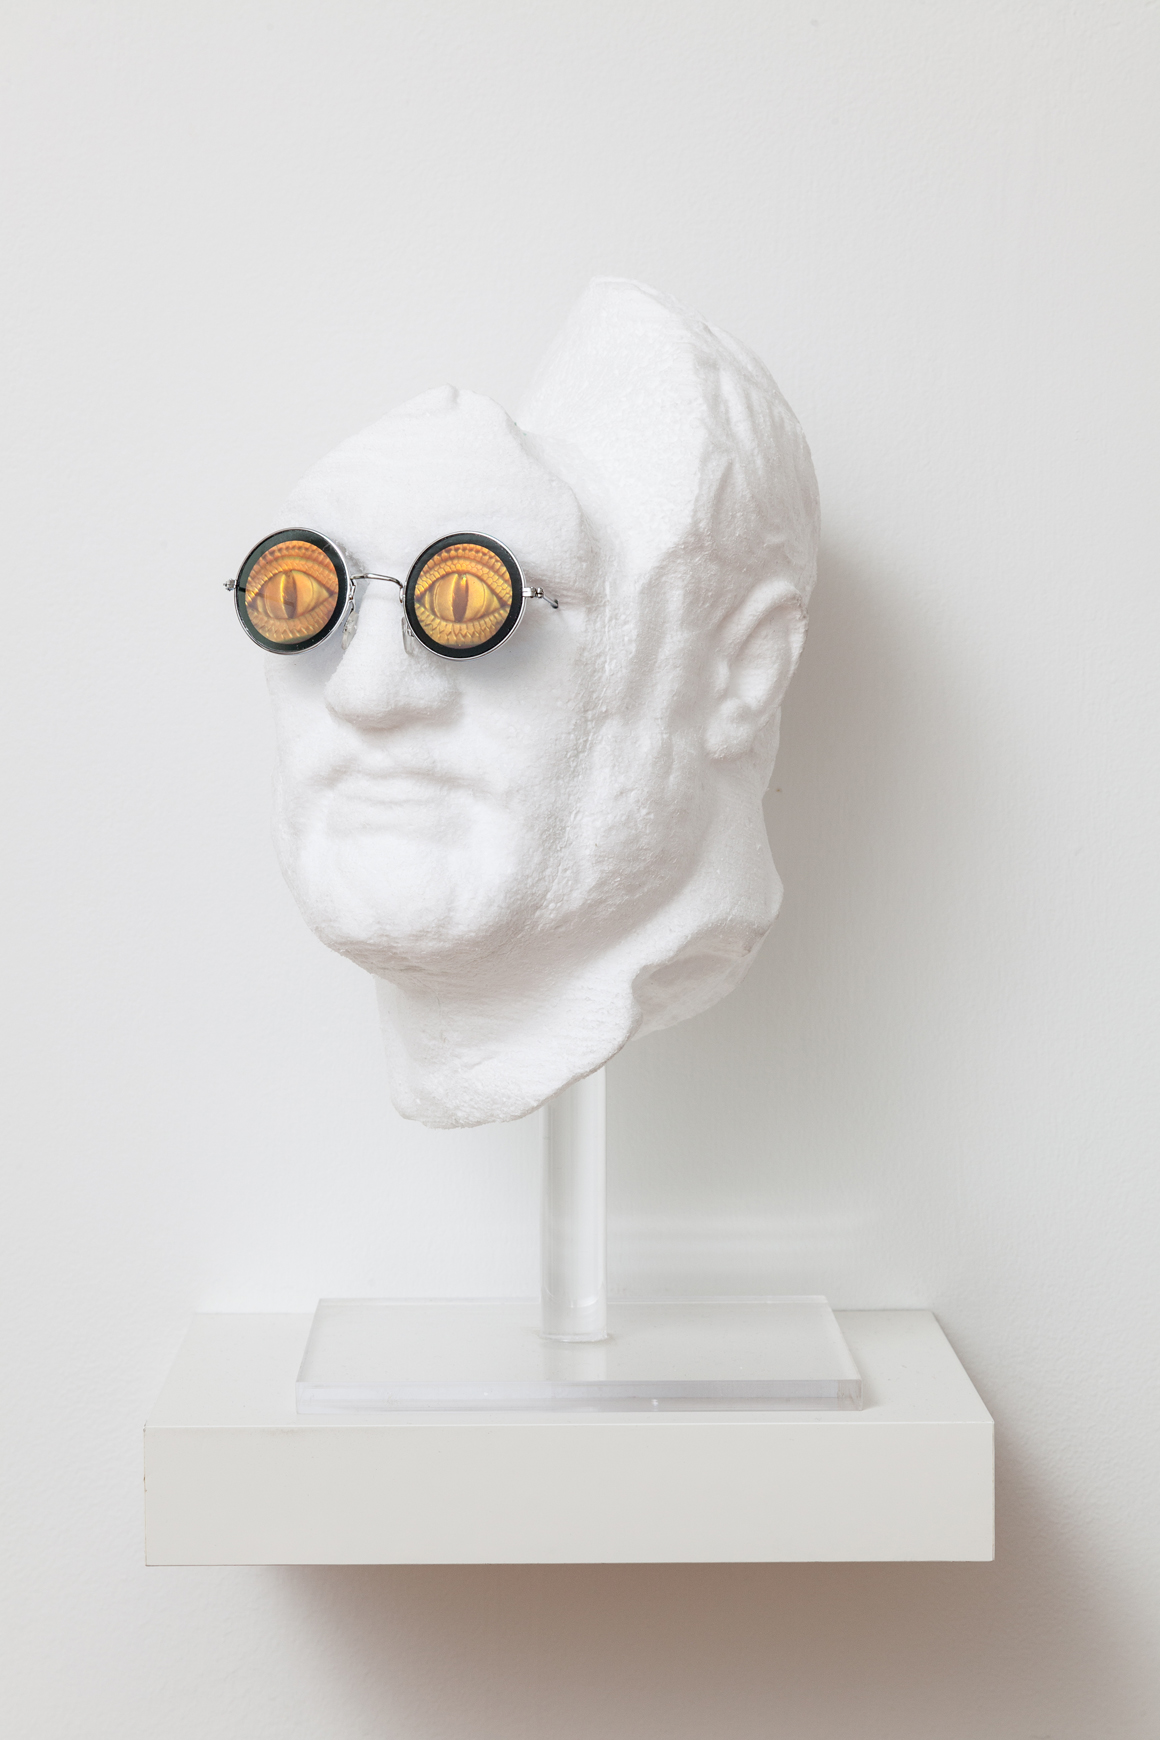 "<p><span class=""name"">Dmitri Obergfell</span><br><em>Untitled (head)</em><span class='media'>Polystyrene, holographic sunglasses</span>16 x 9 x 9 in (40.6 x 22.9 x 22.9 cm)<br>x  in  (0 x 0 cm) Framed (framed)<br>2017<br><a class='inquire' href='mailto:info@gildargallery.com?subject=Artwork Inquiry DOBE0030&body=I am interested in finding out more about Untitled (head) by Dmitri Obergfell'>Inquire</a></p>"